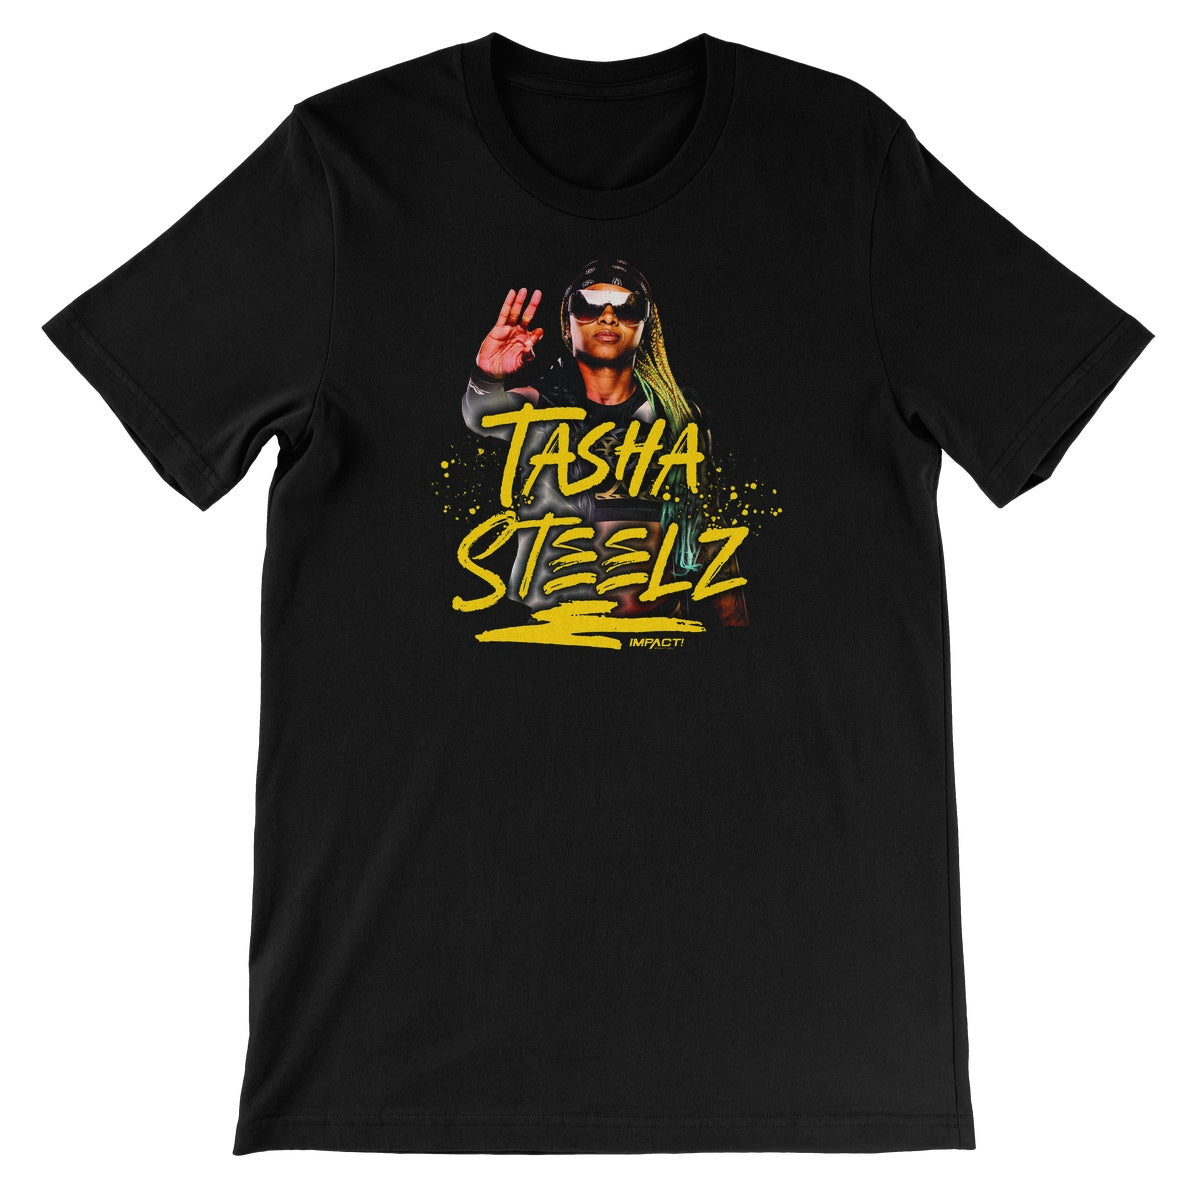 Tasha Steelz Unisex Short Sleeve T-Shirt